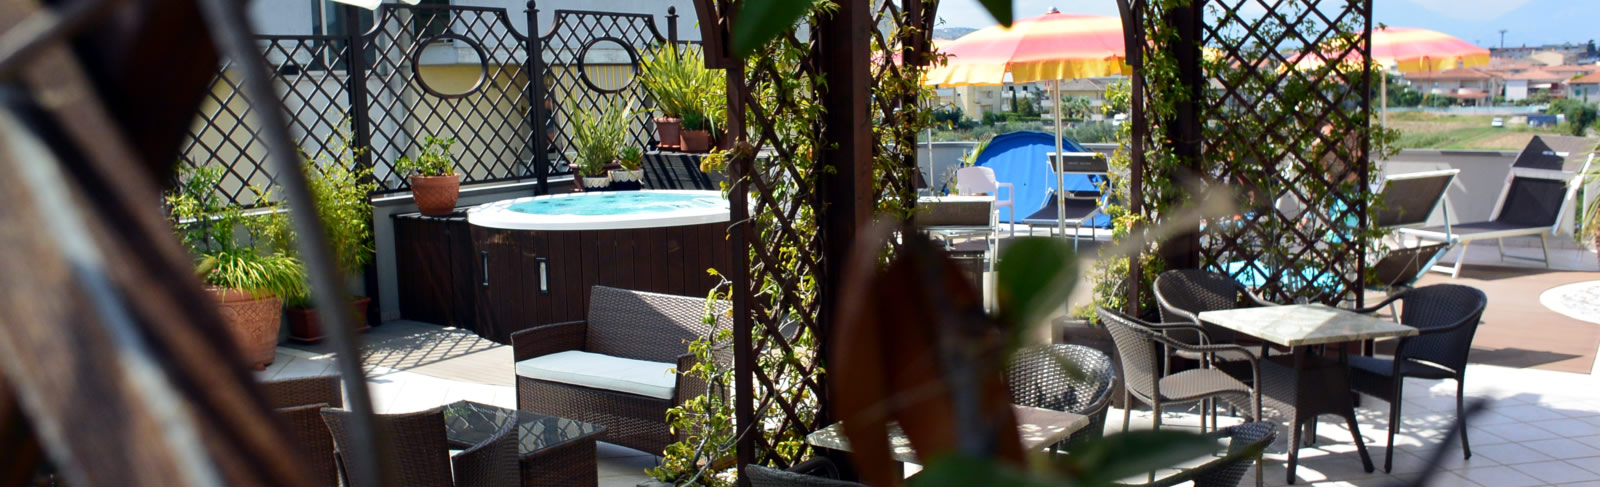 Hotel Bed and breakfast Alba Adriatica